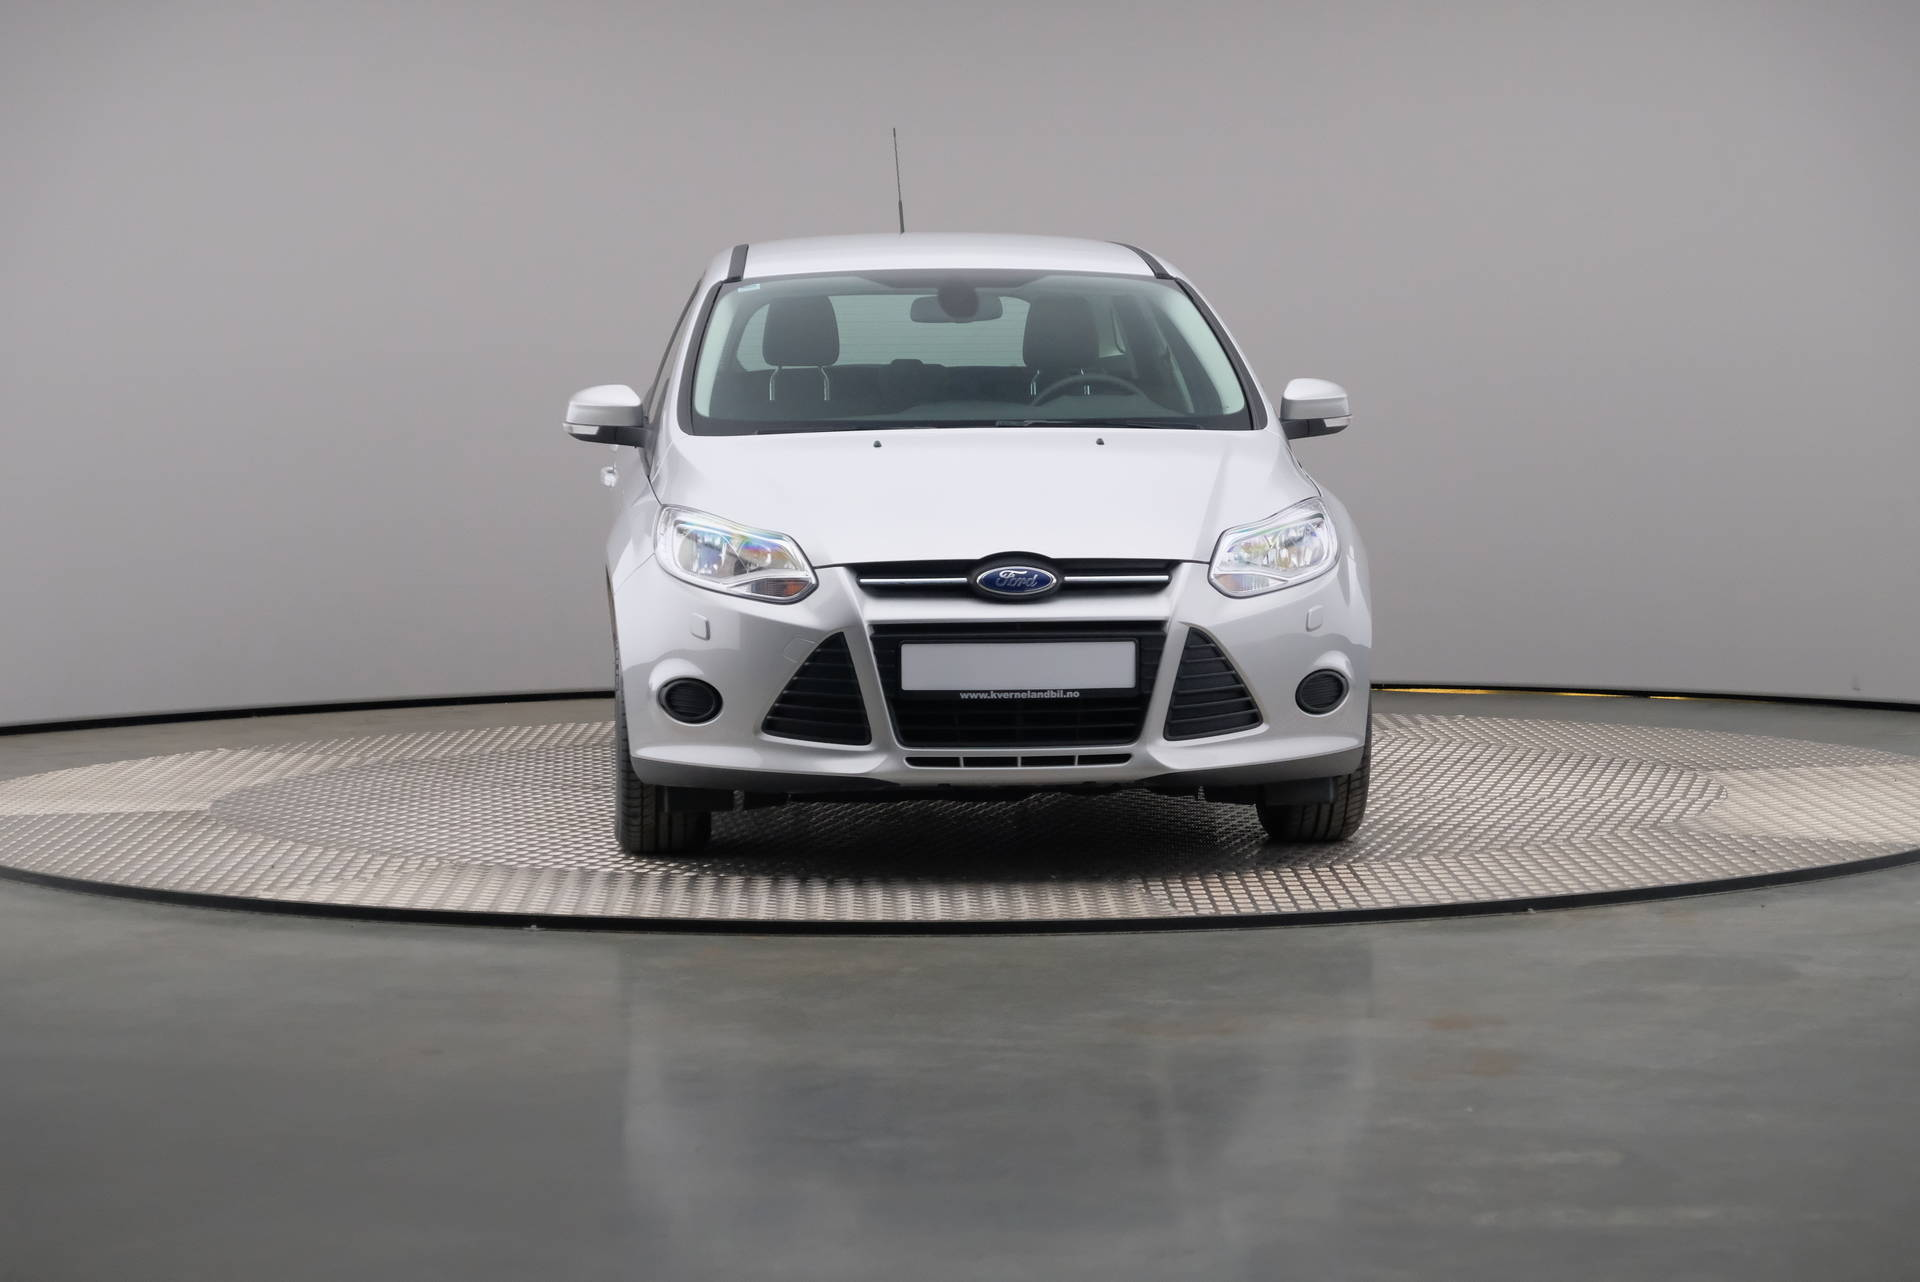 Ford Focus 1.1 100HK Trend PDC/BT, 360-image31